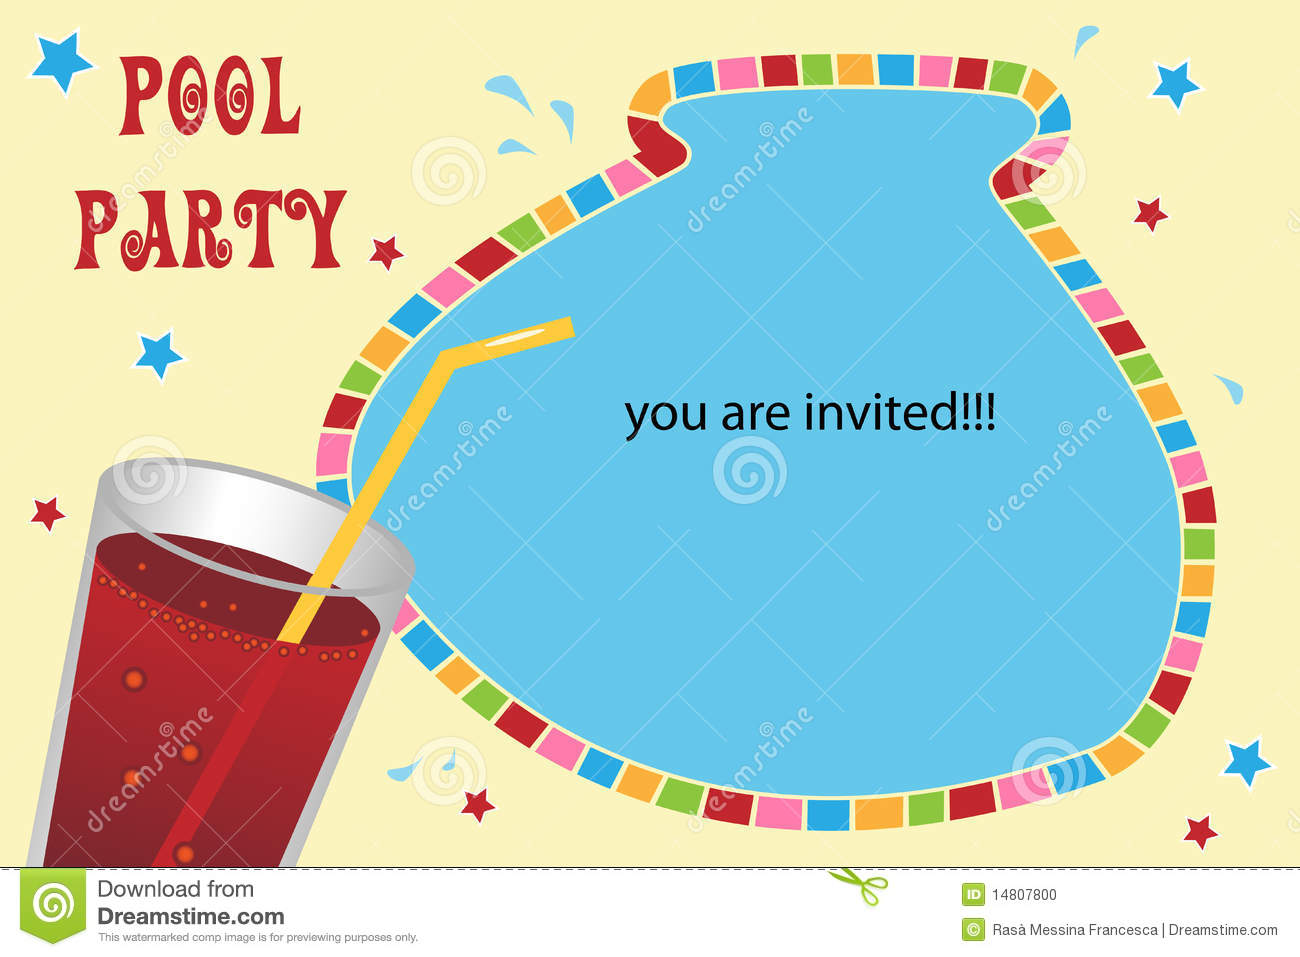 Illustration Of A Pool Party Invitation CardEPS File Available